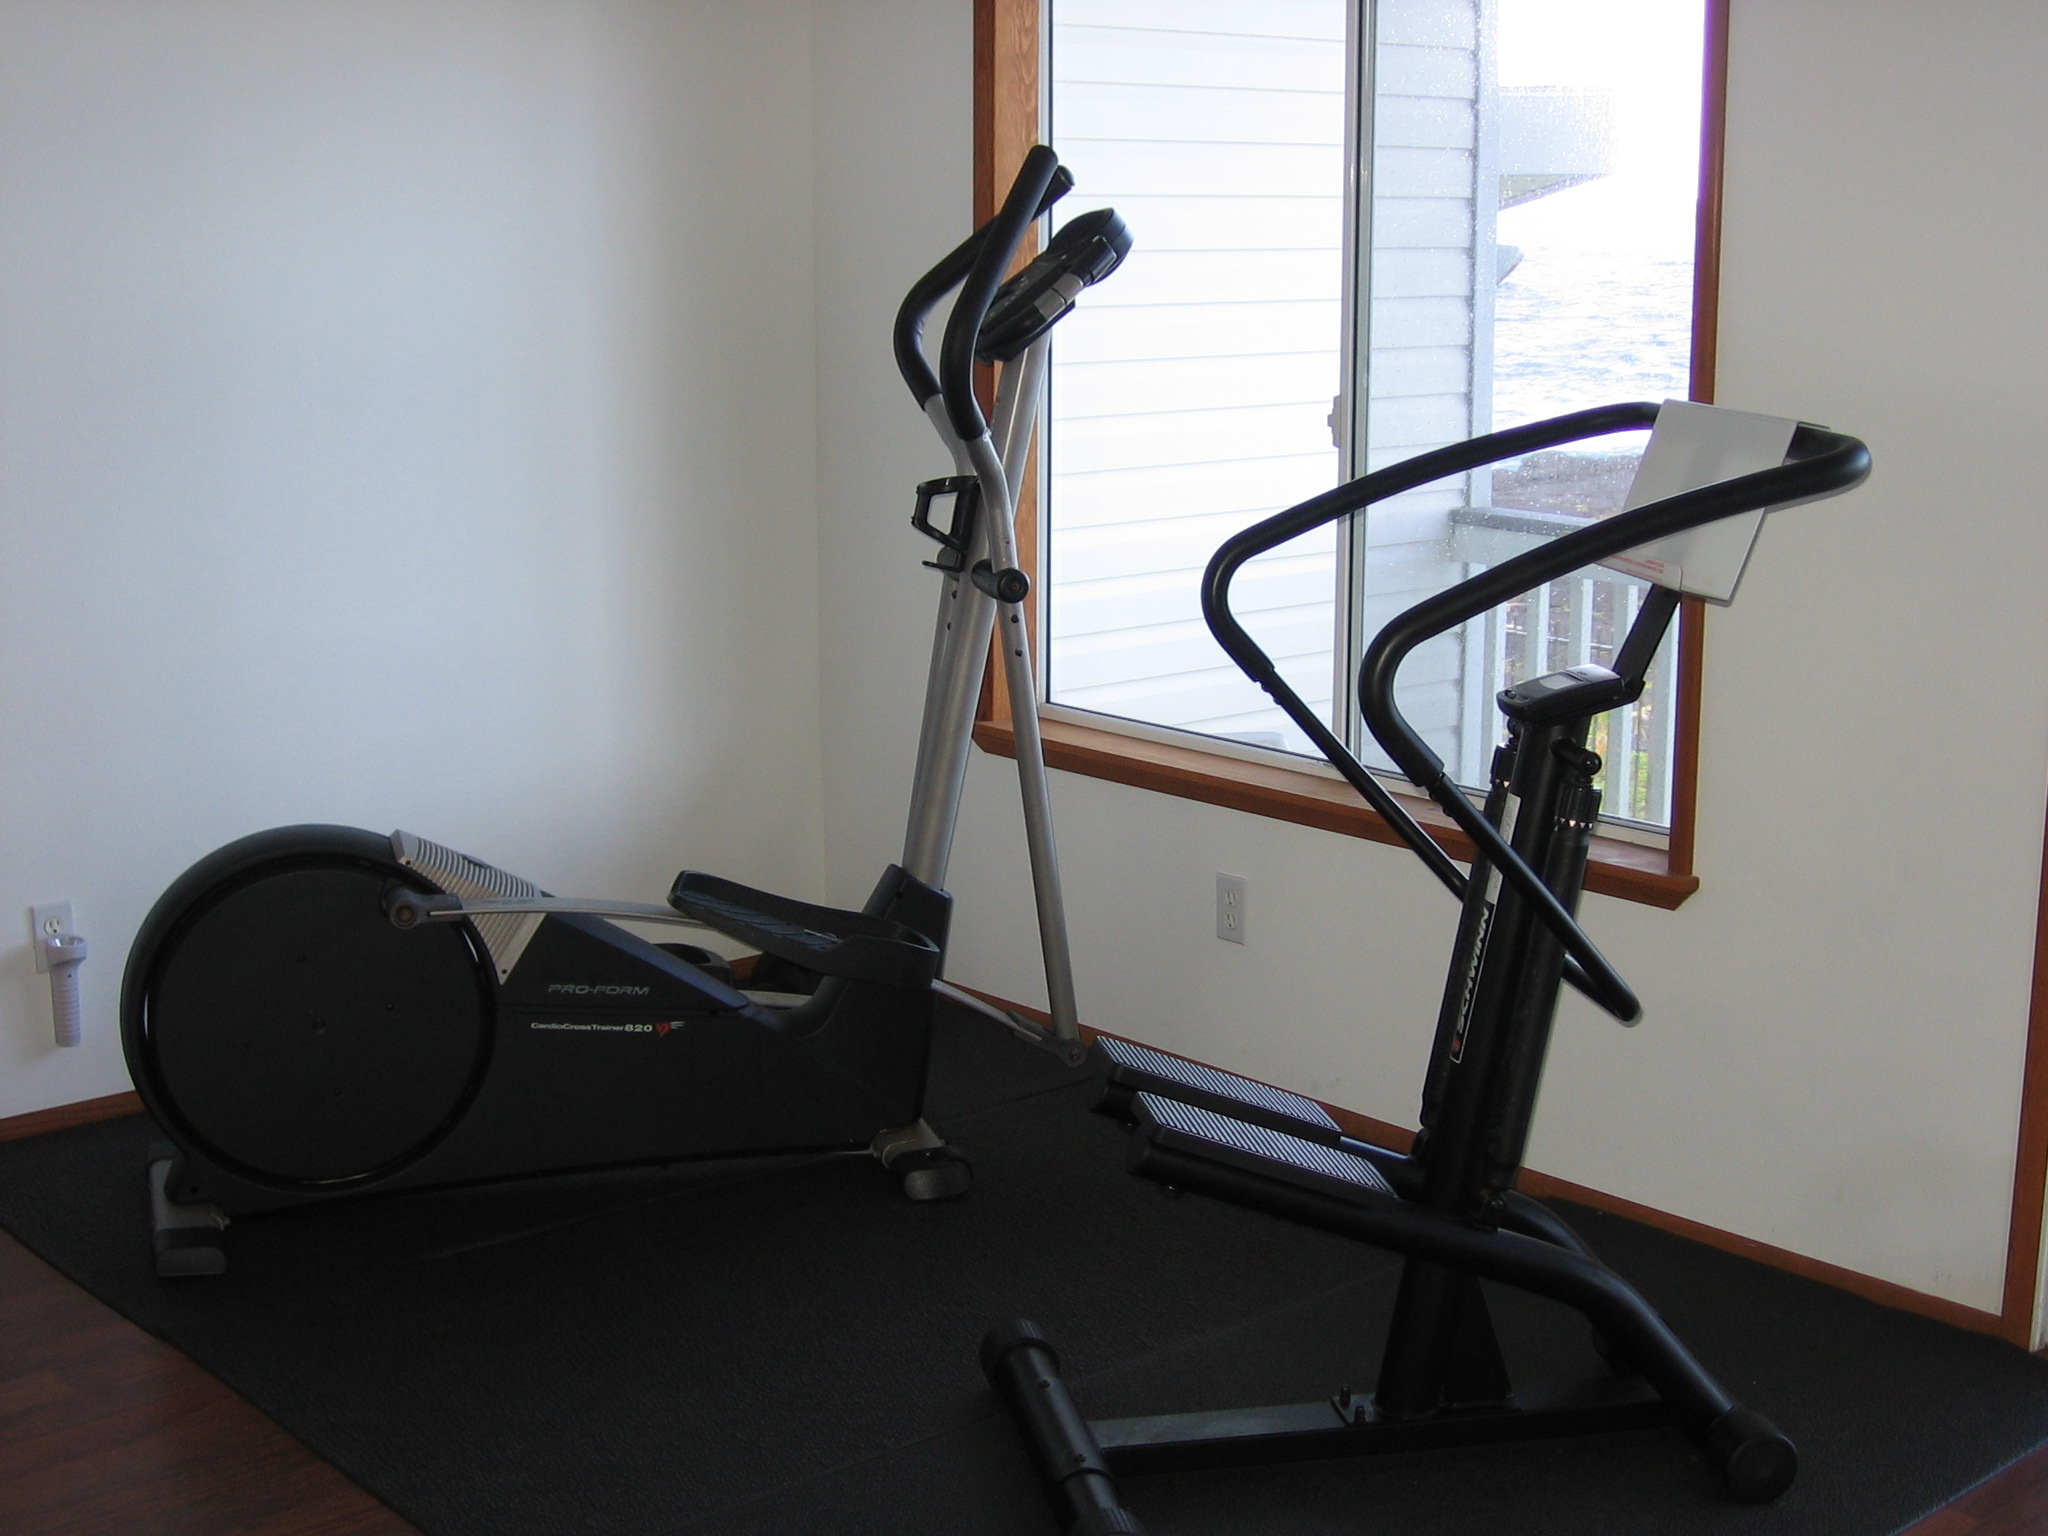 Aerobics equipments and free weights